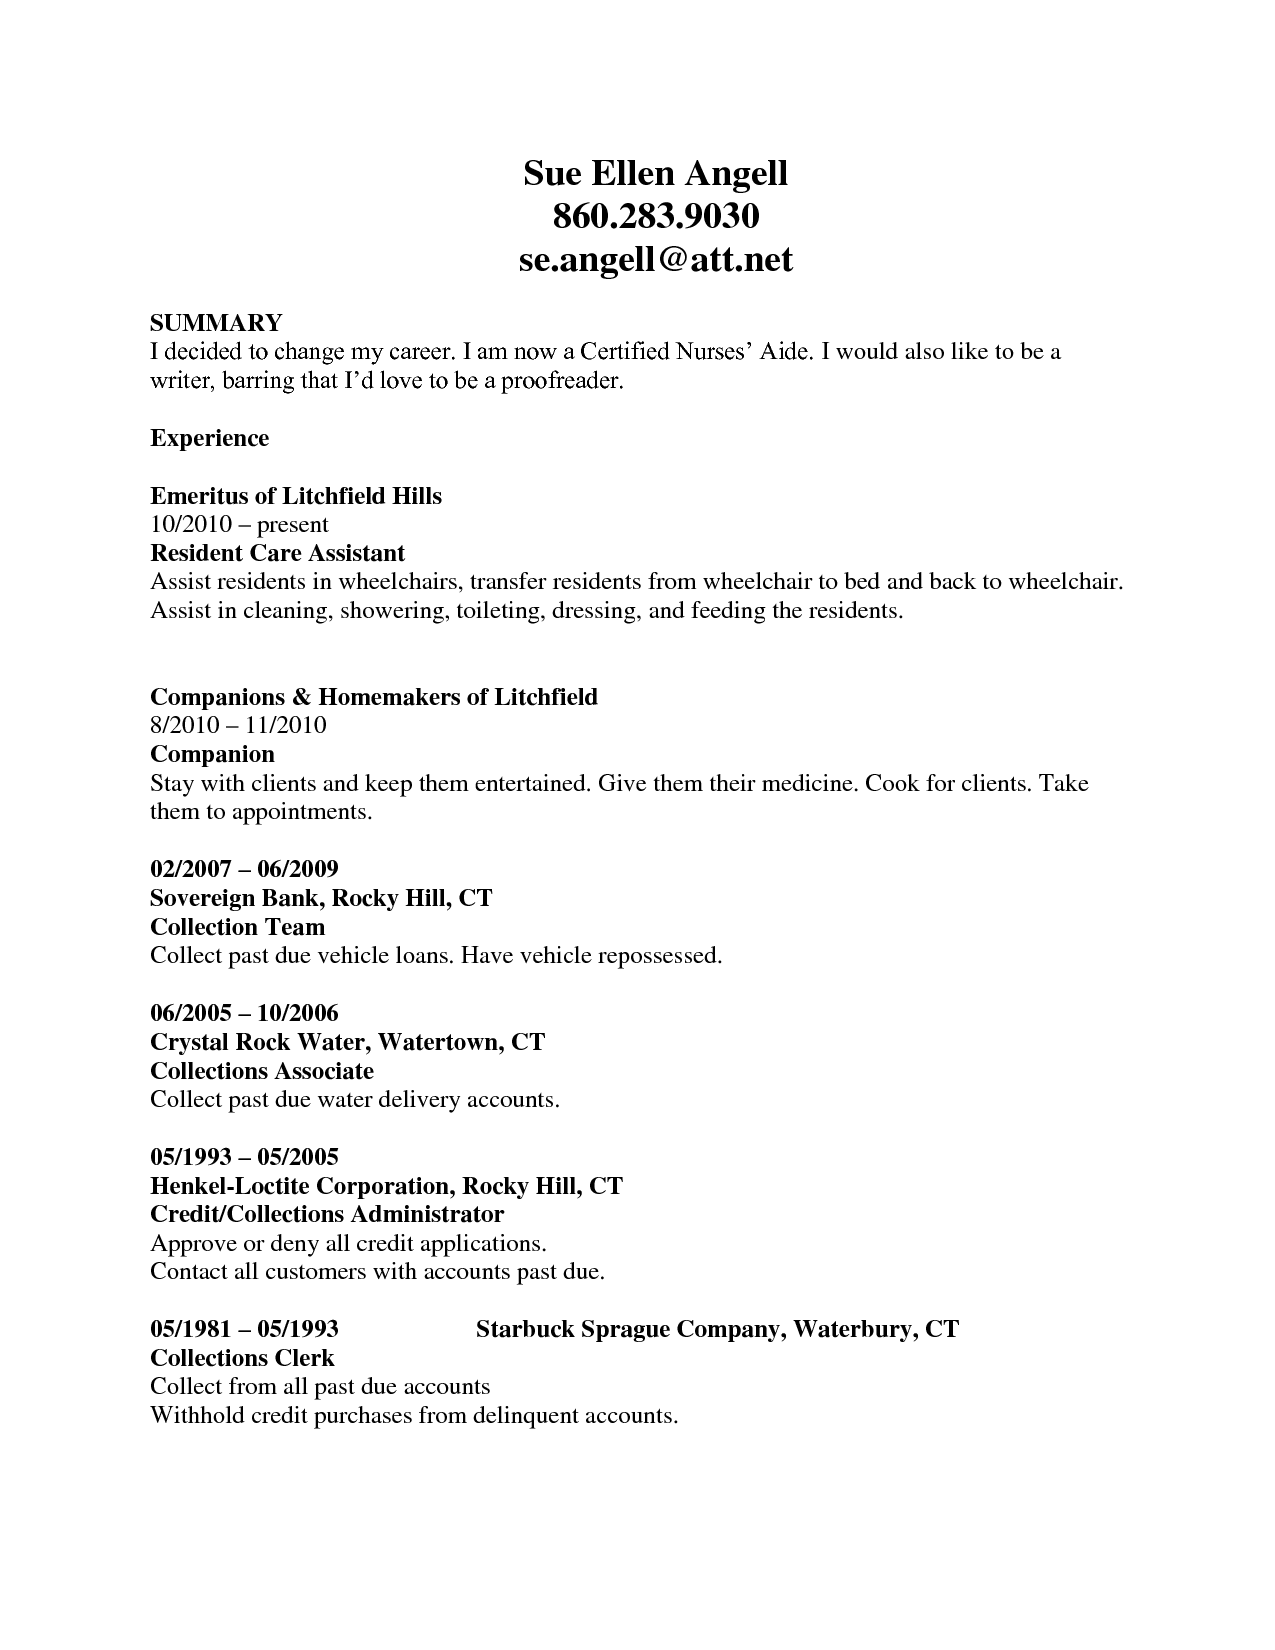 Amazing CNA Resume Example: Click To Zoom